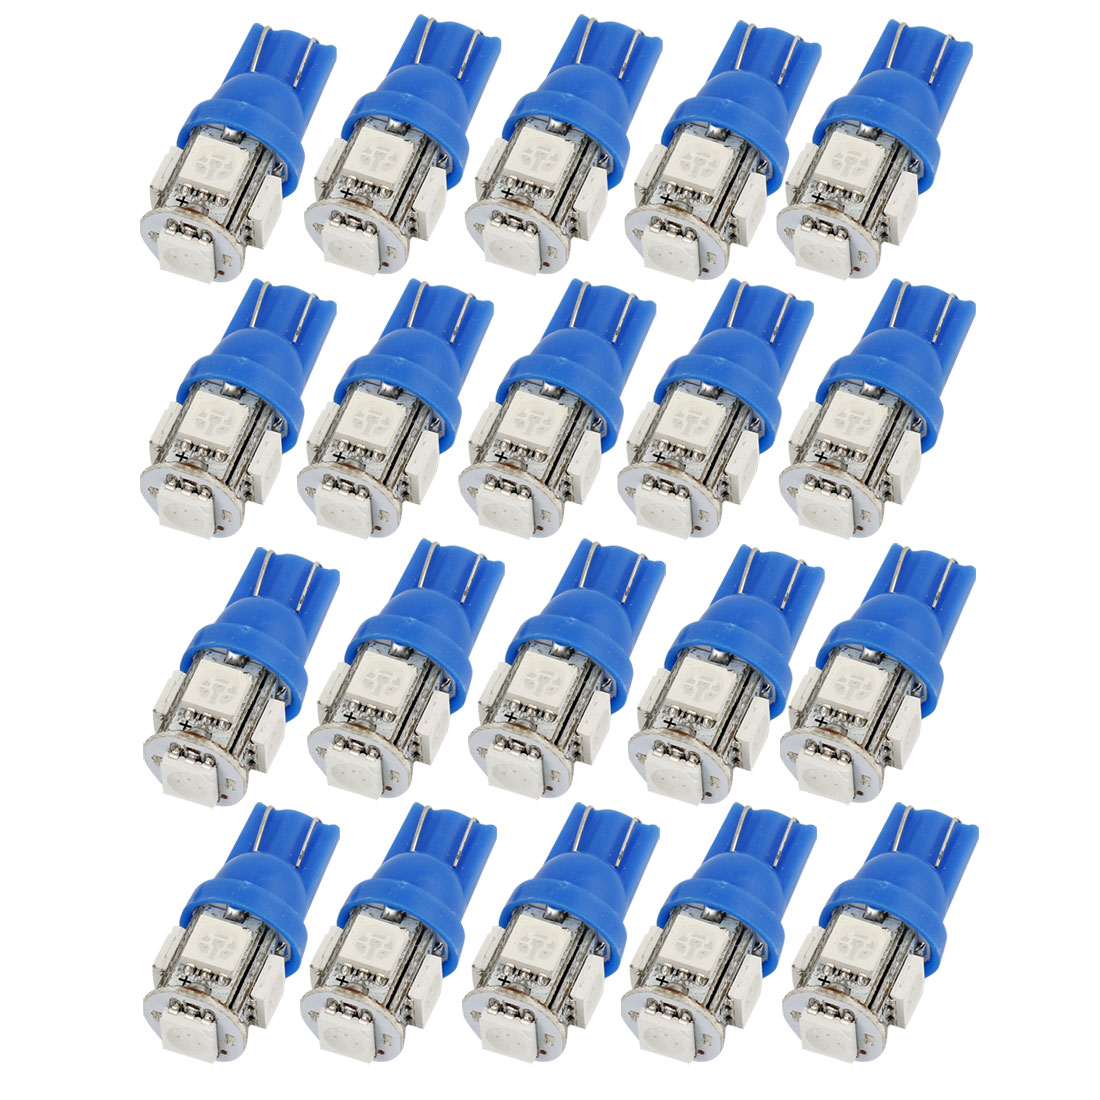 20 Pcs T10 W5W Blue 5 5050 SMD LED Car Interior Light Internal